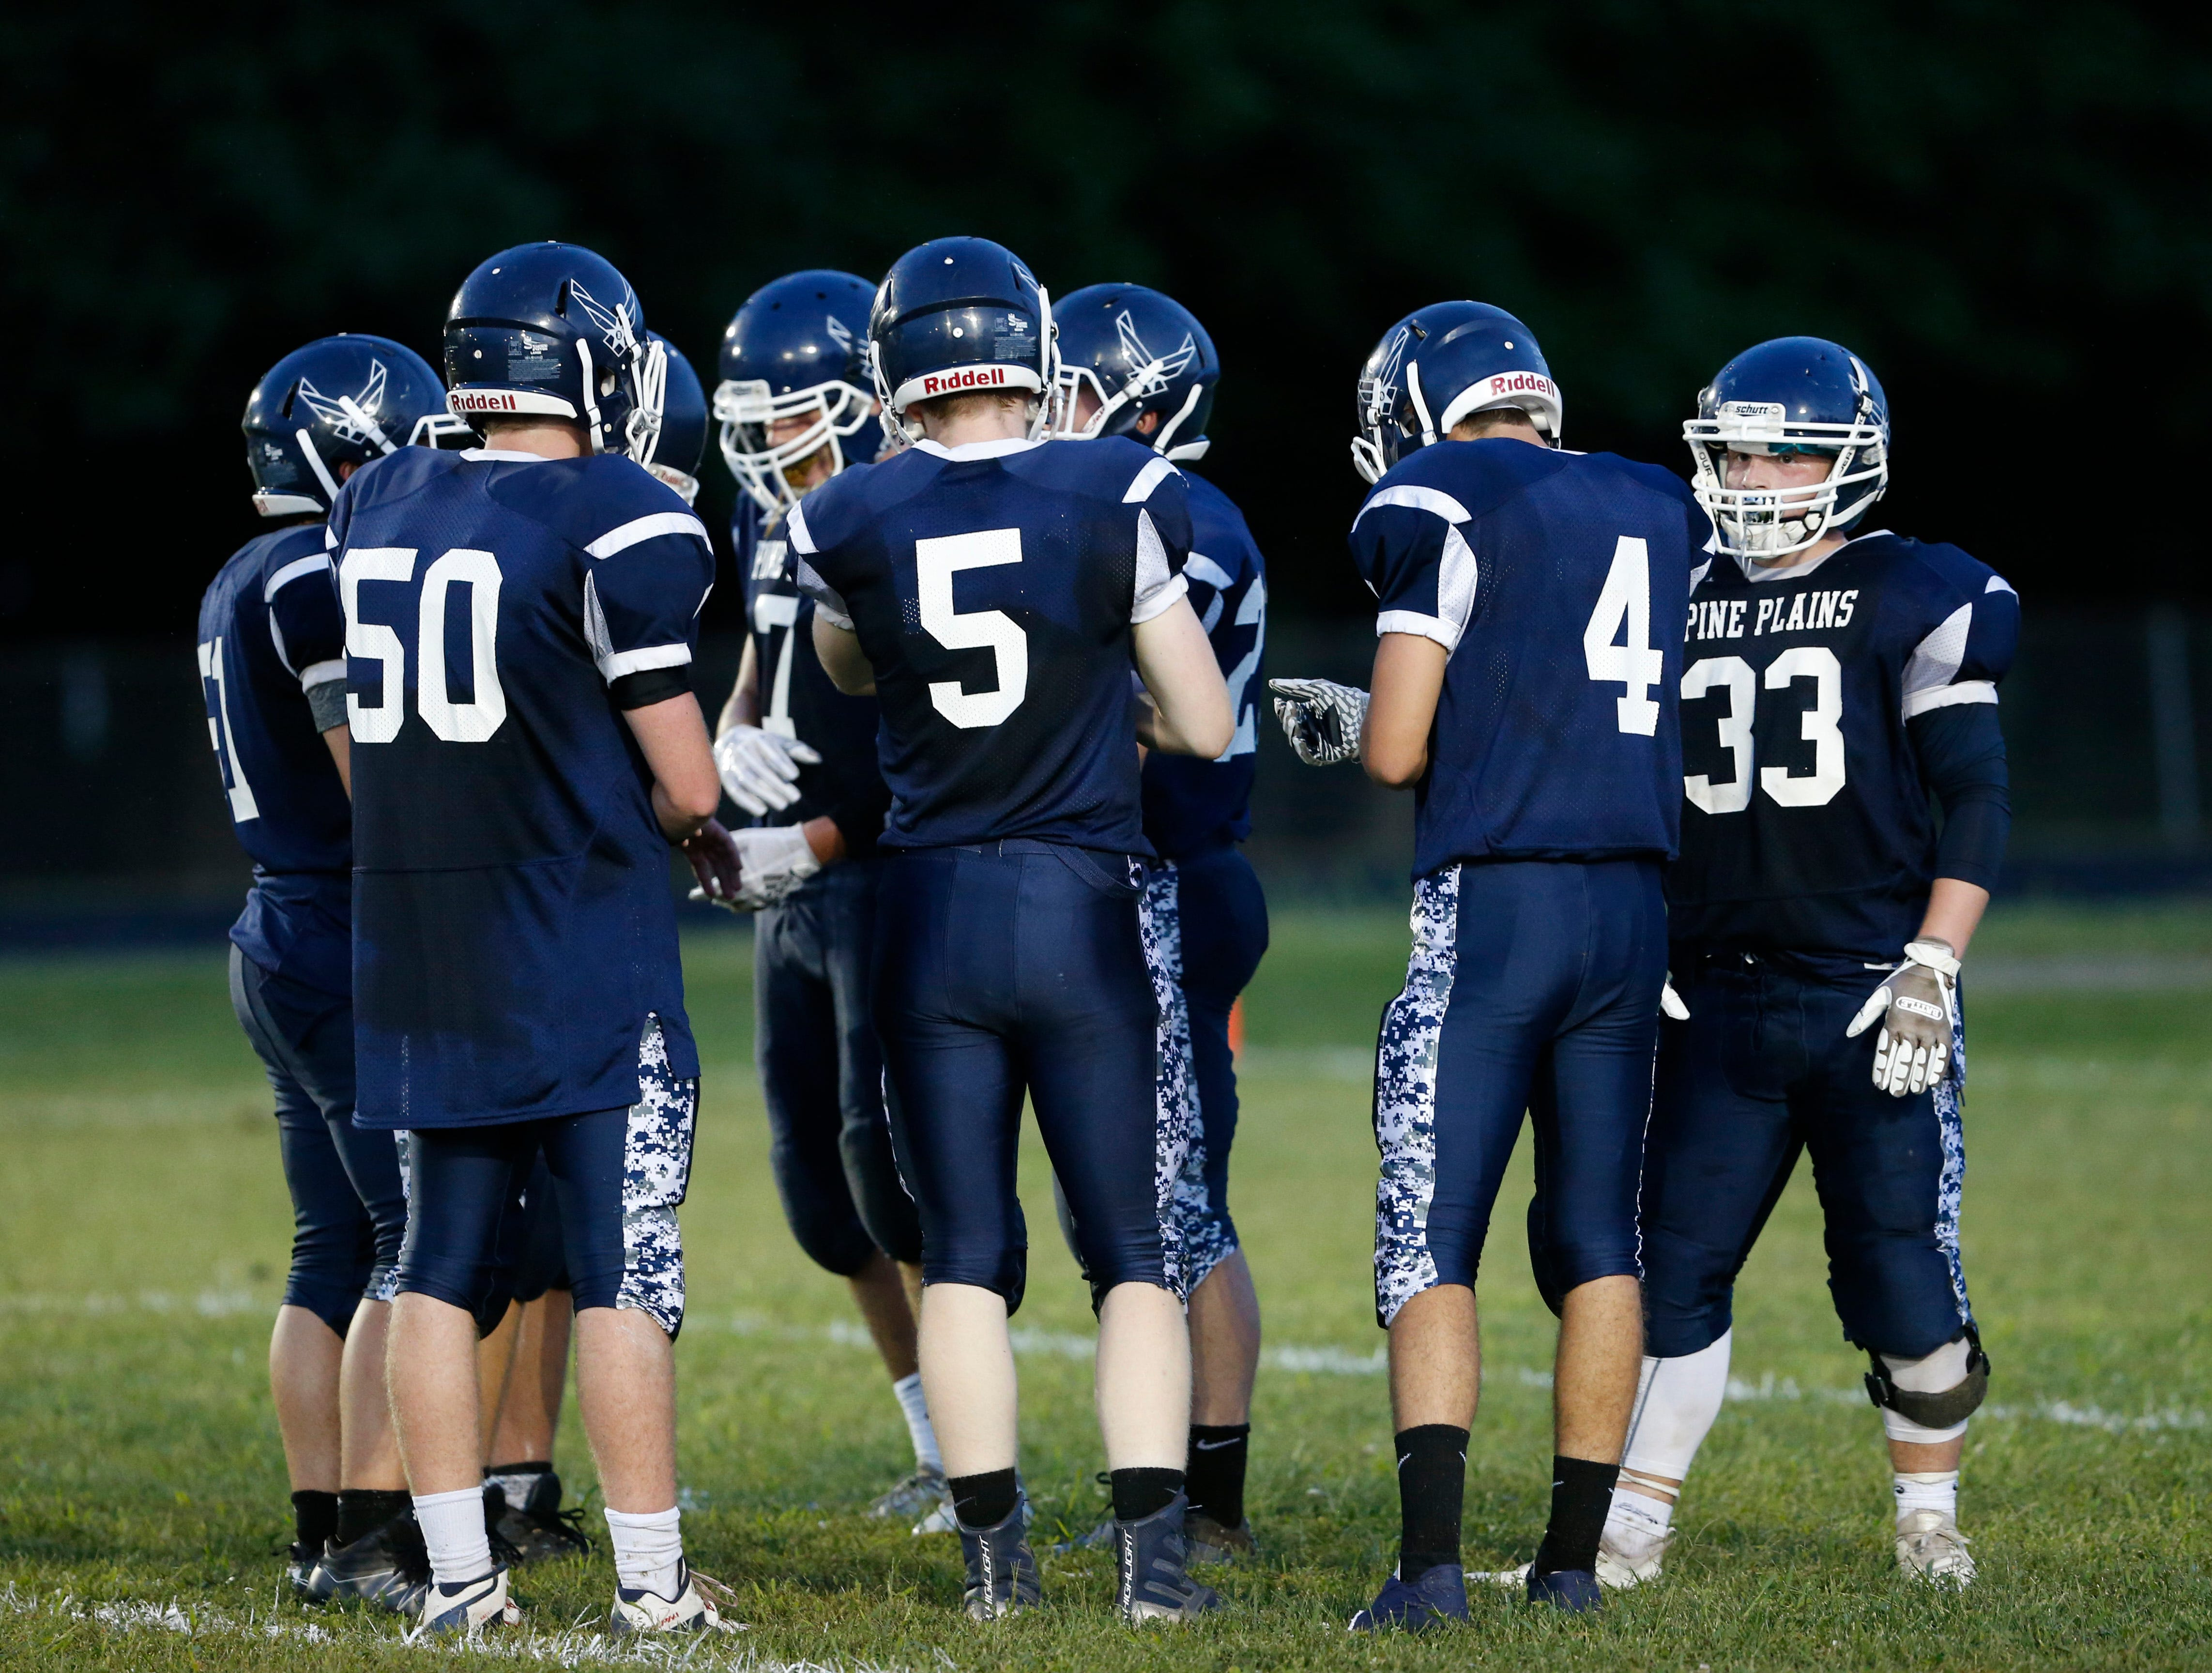 The Pine Plains offense huddles before running a play during its eight-man football game against Roscoe on Friday.